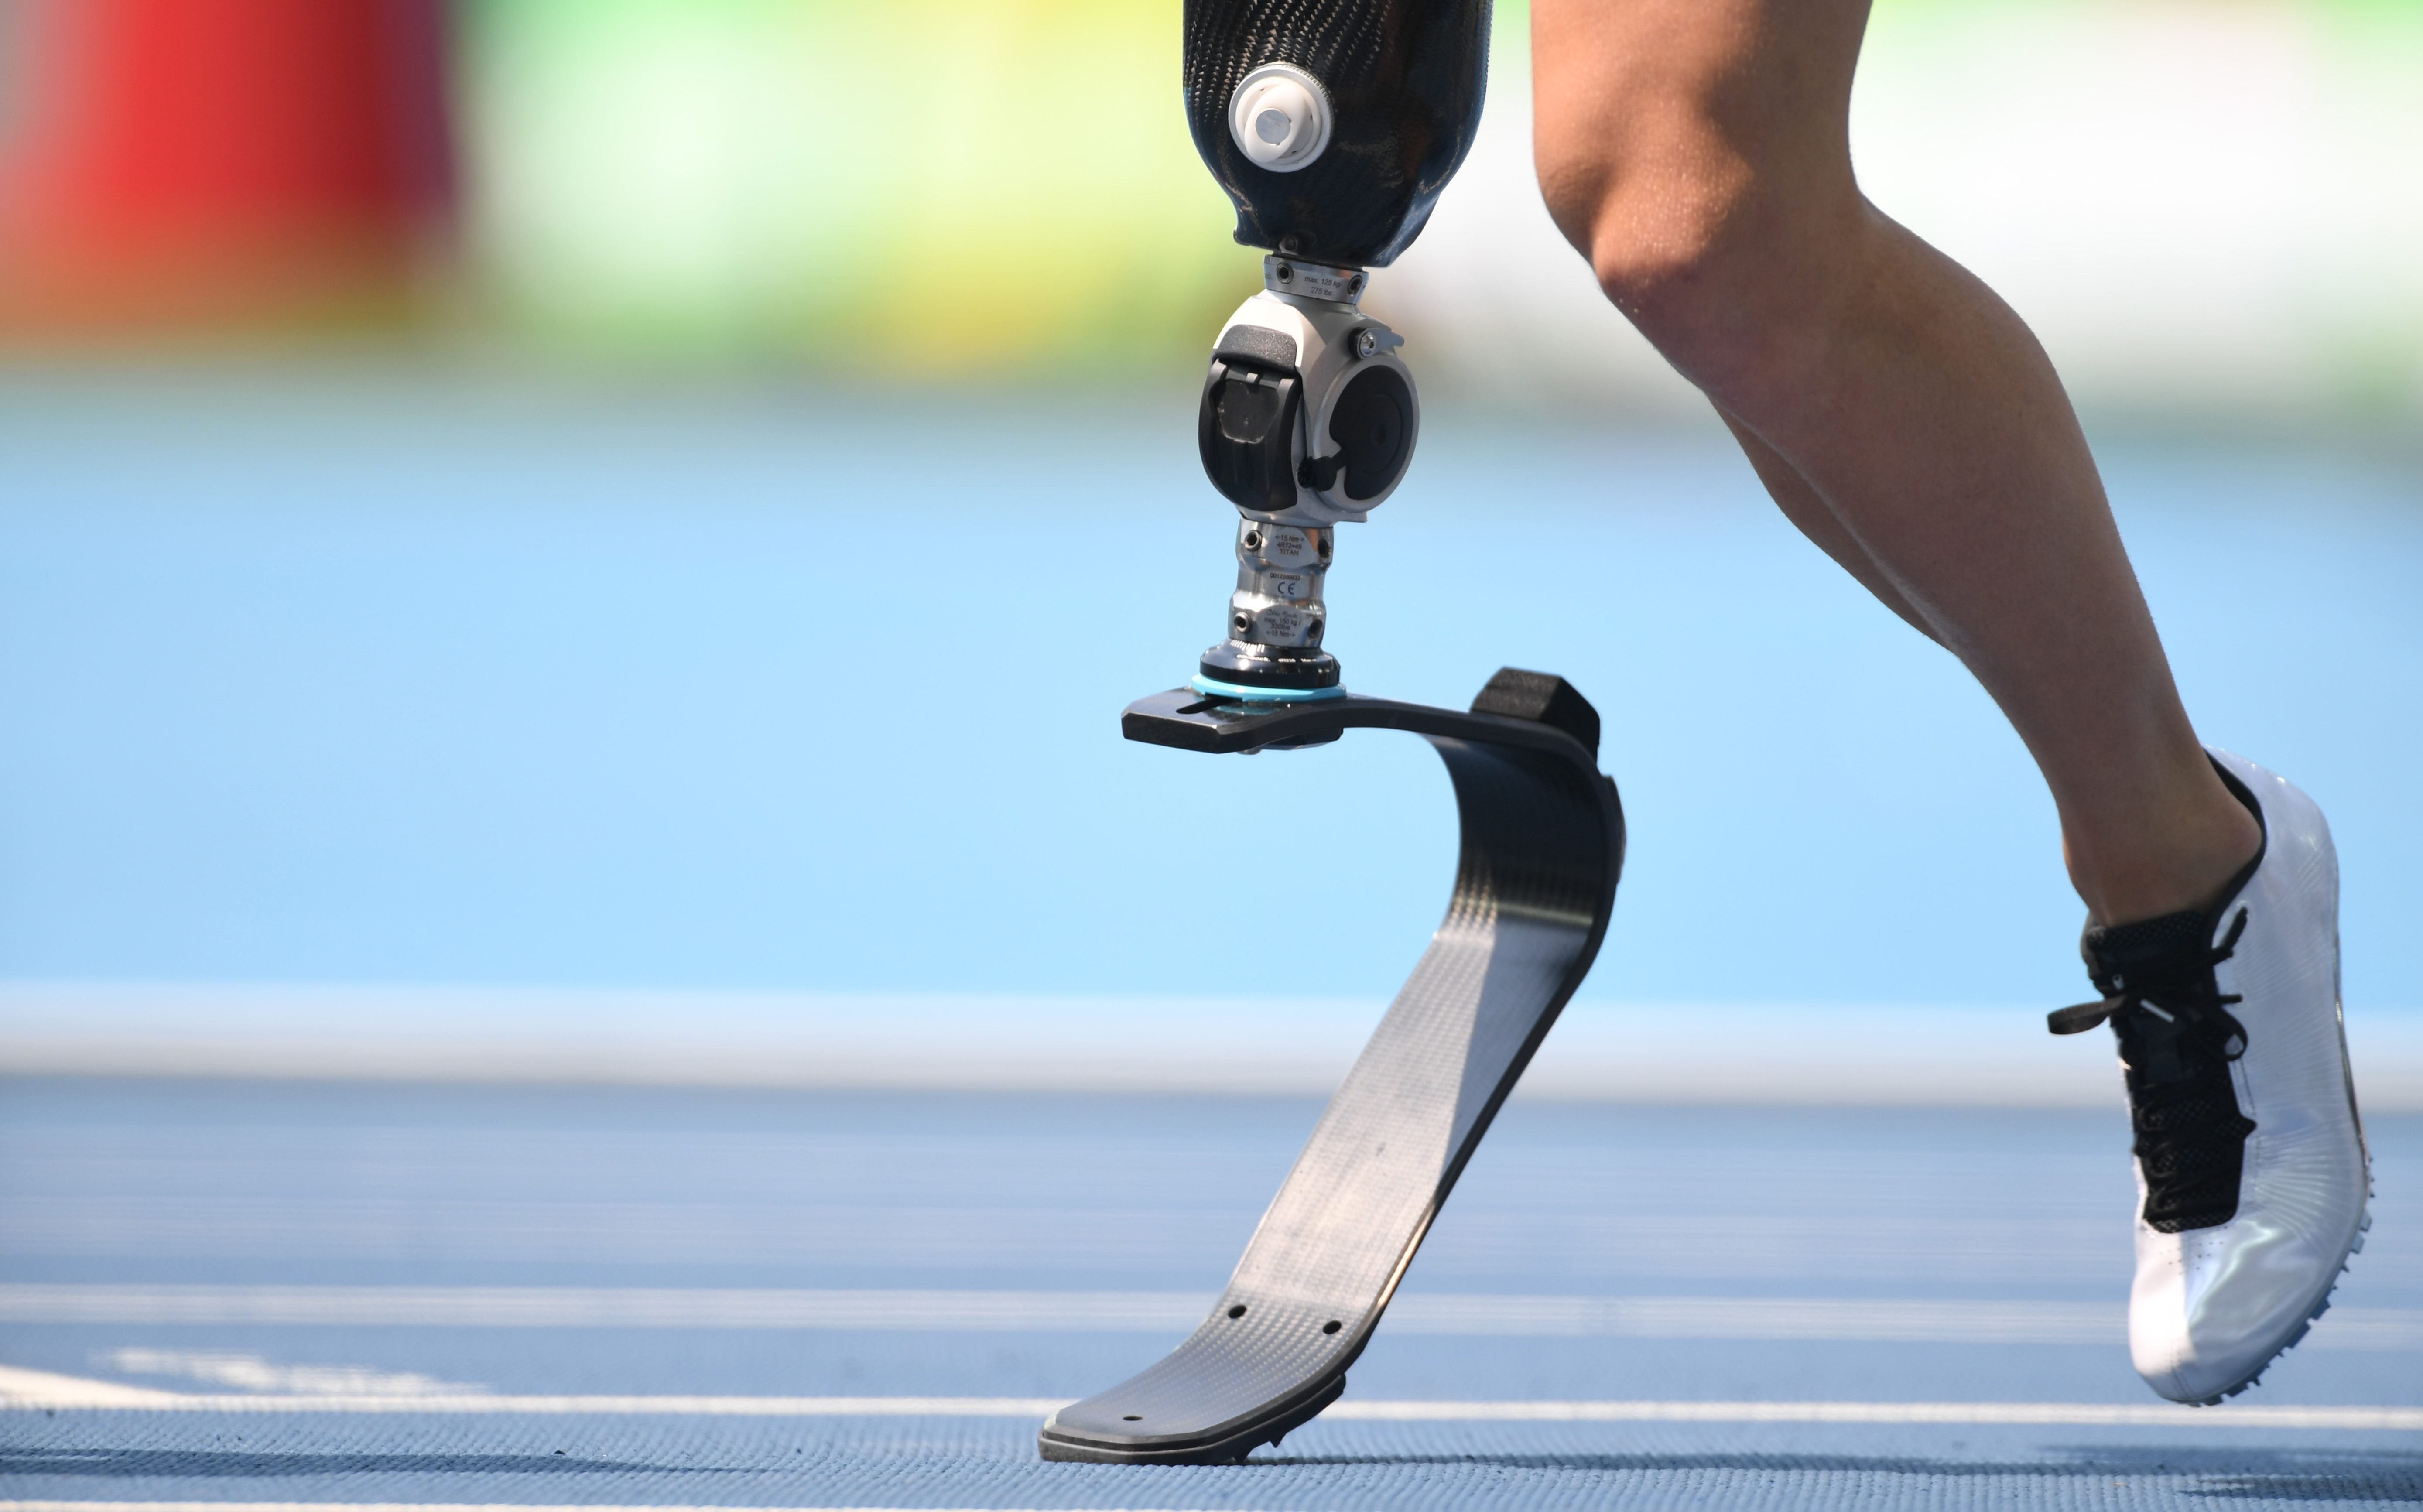 Paralympics Australia supports new integrity measures to safeguard Australian sport